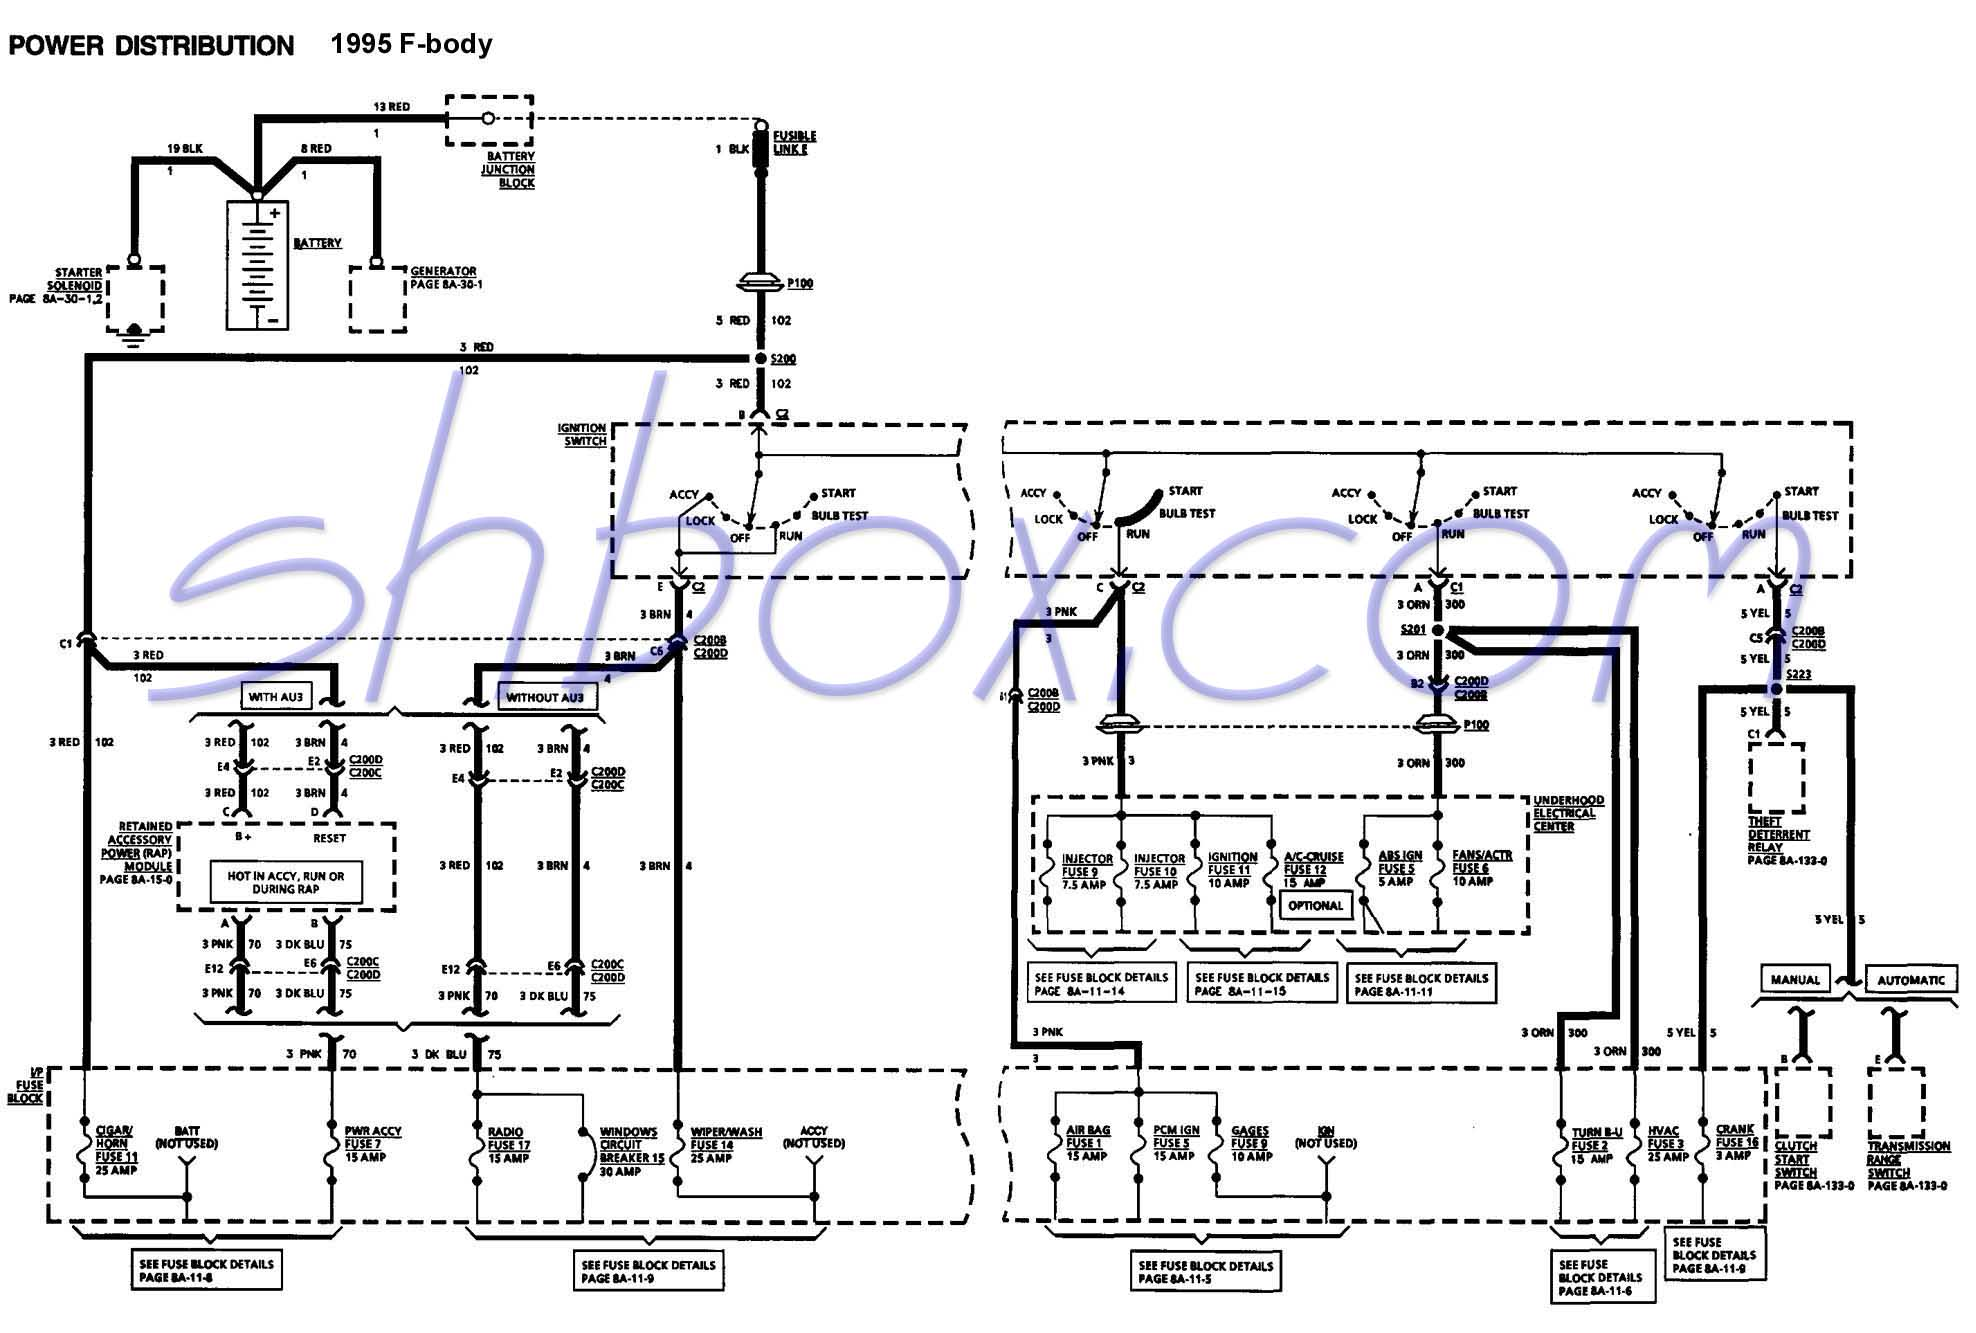 hight resolution of 4th gen lt1 f body tech aidsignition switch schematic 1995